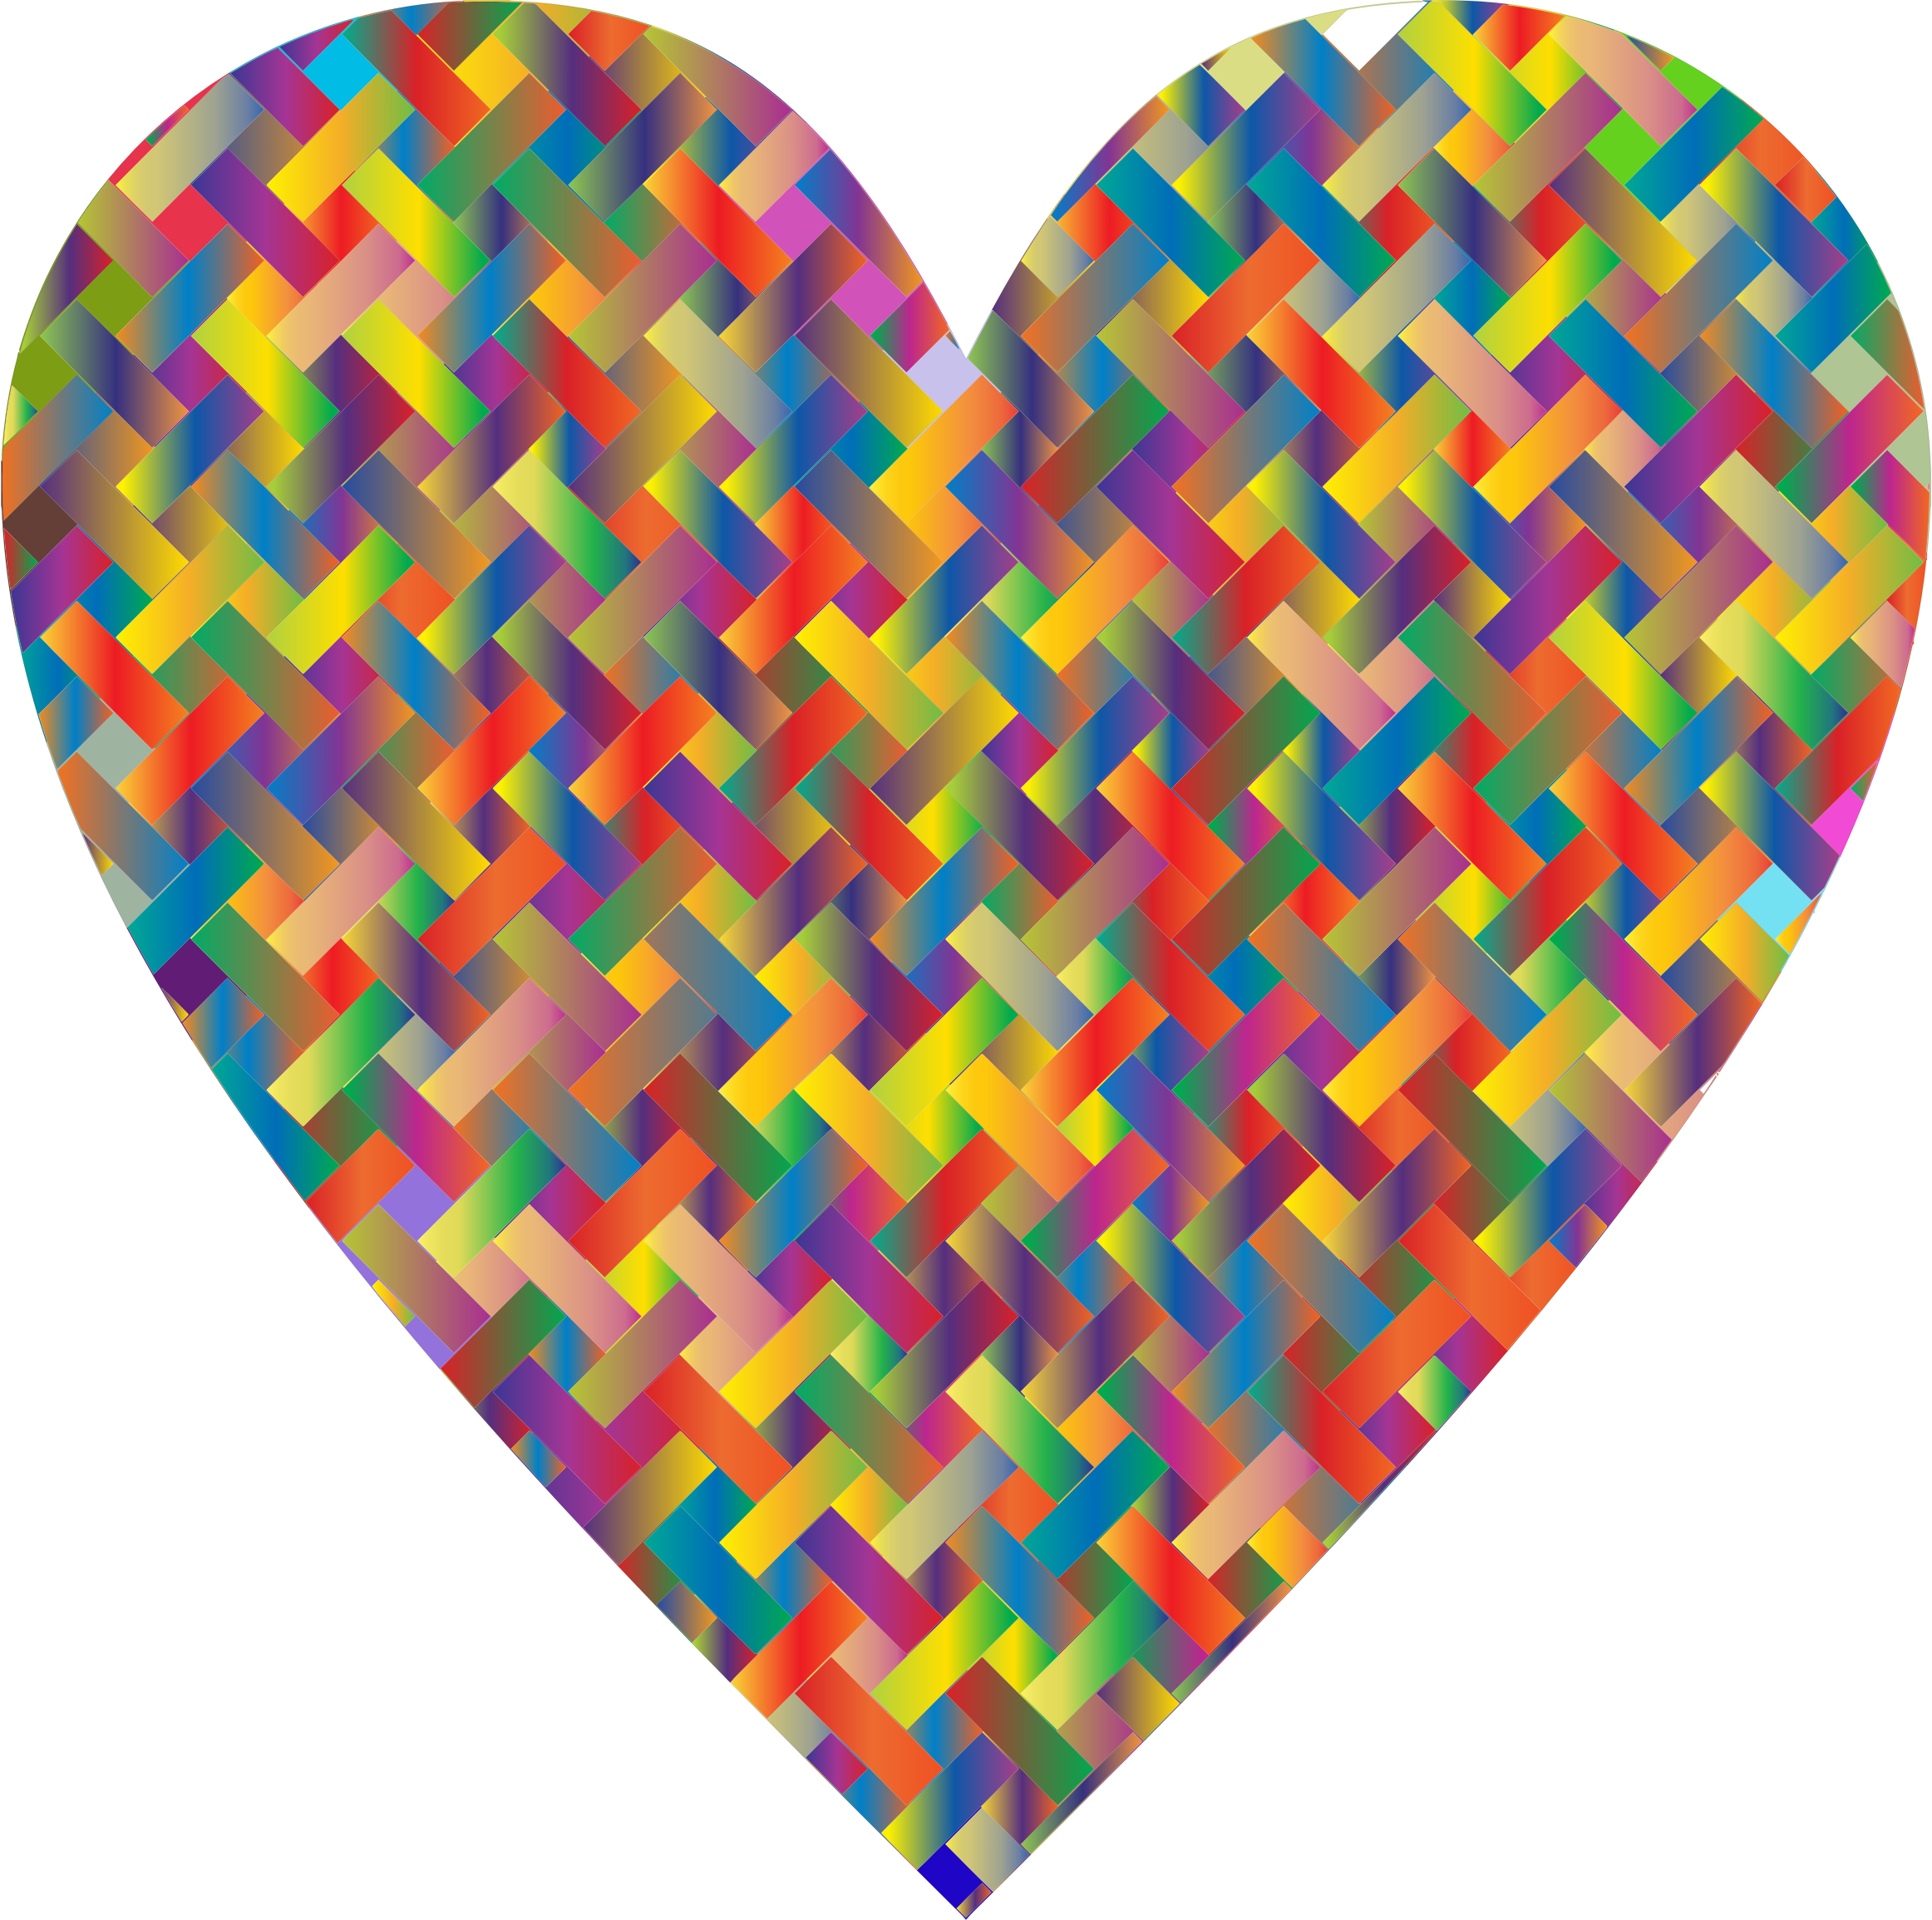 Colorful Heart Lattice Weave 5 by GDJ